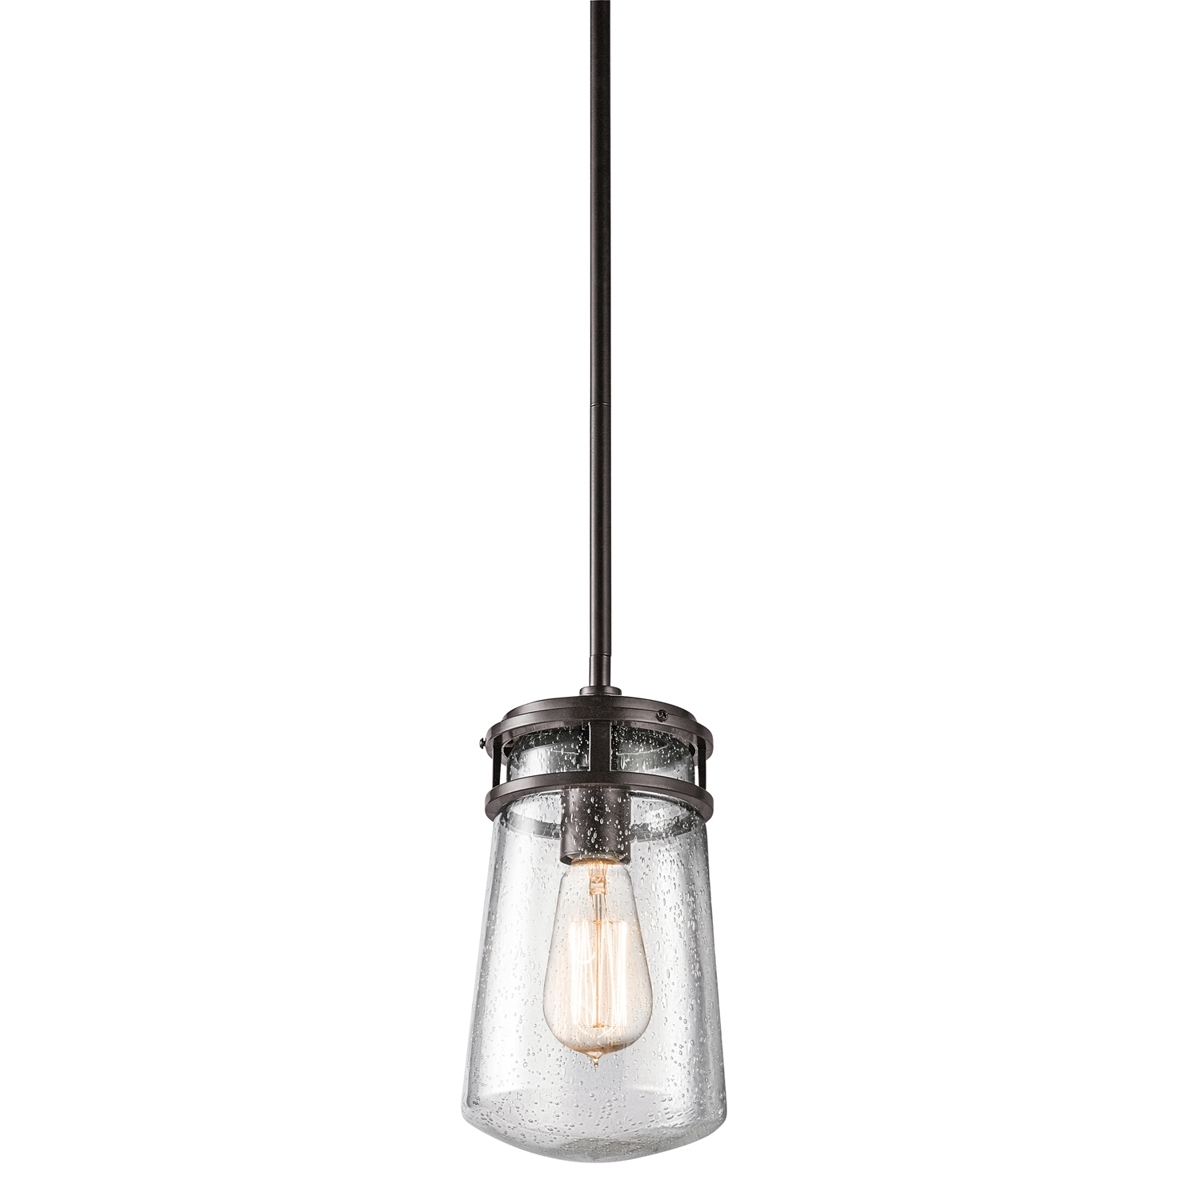 Lighting : Led Outside Lights External Ceiling Light Outdoor Hanging Pertaining To Fashionable Led Outdoor Hanging Lights (View 19 of 20)